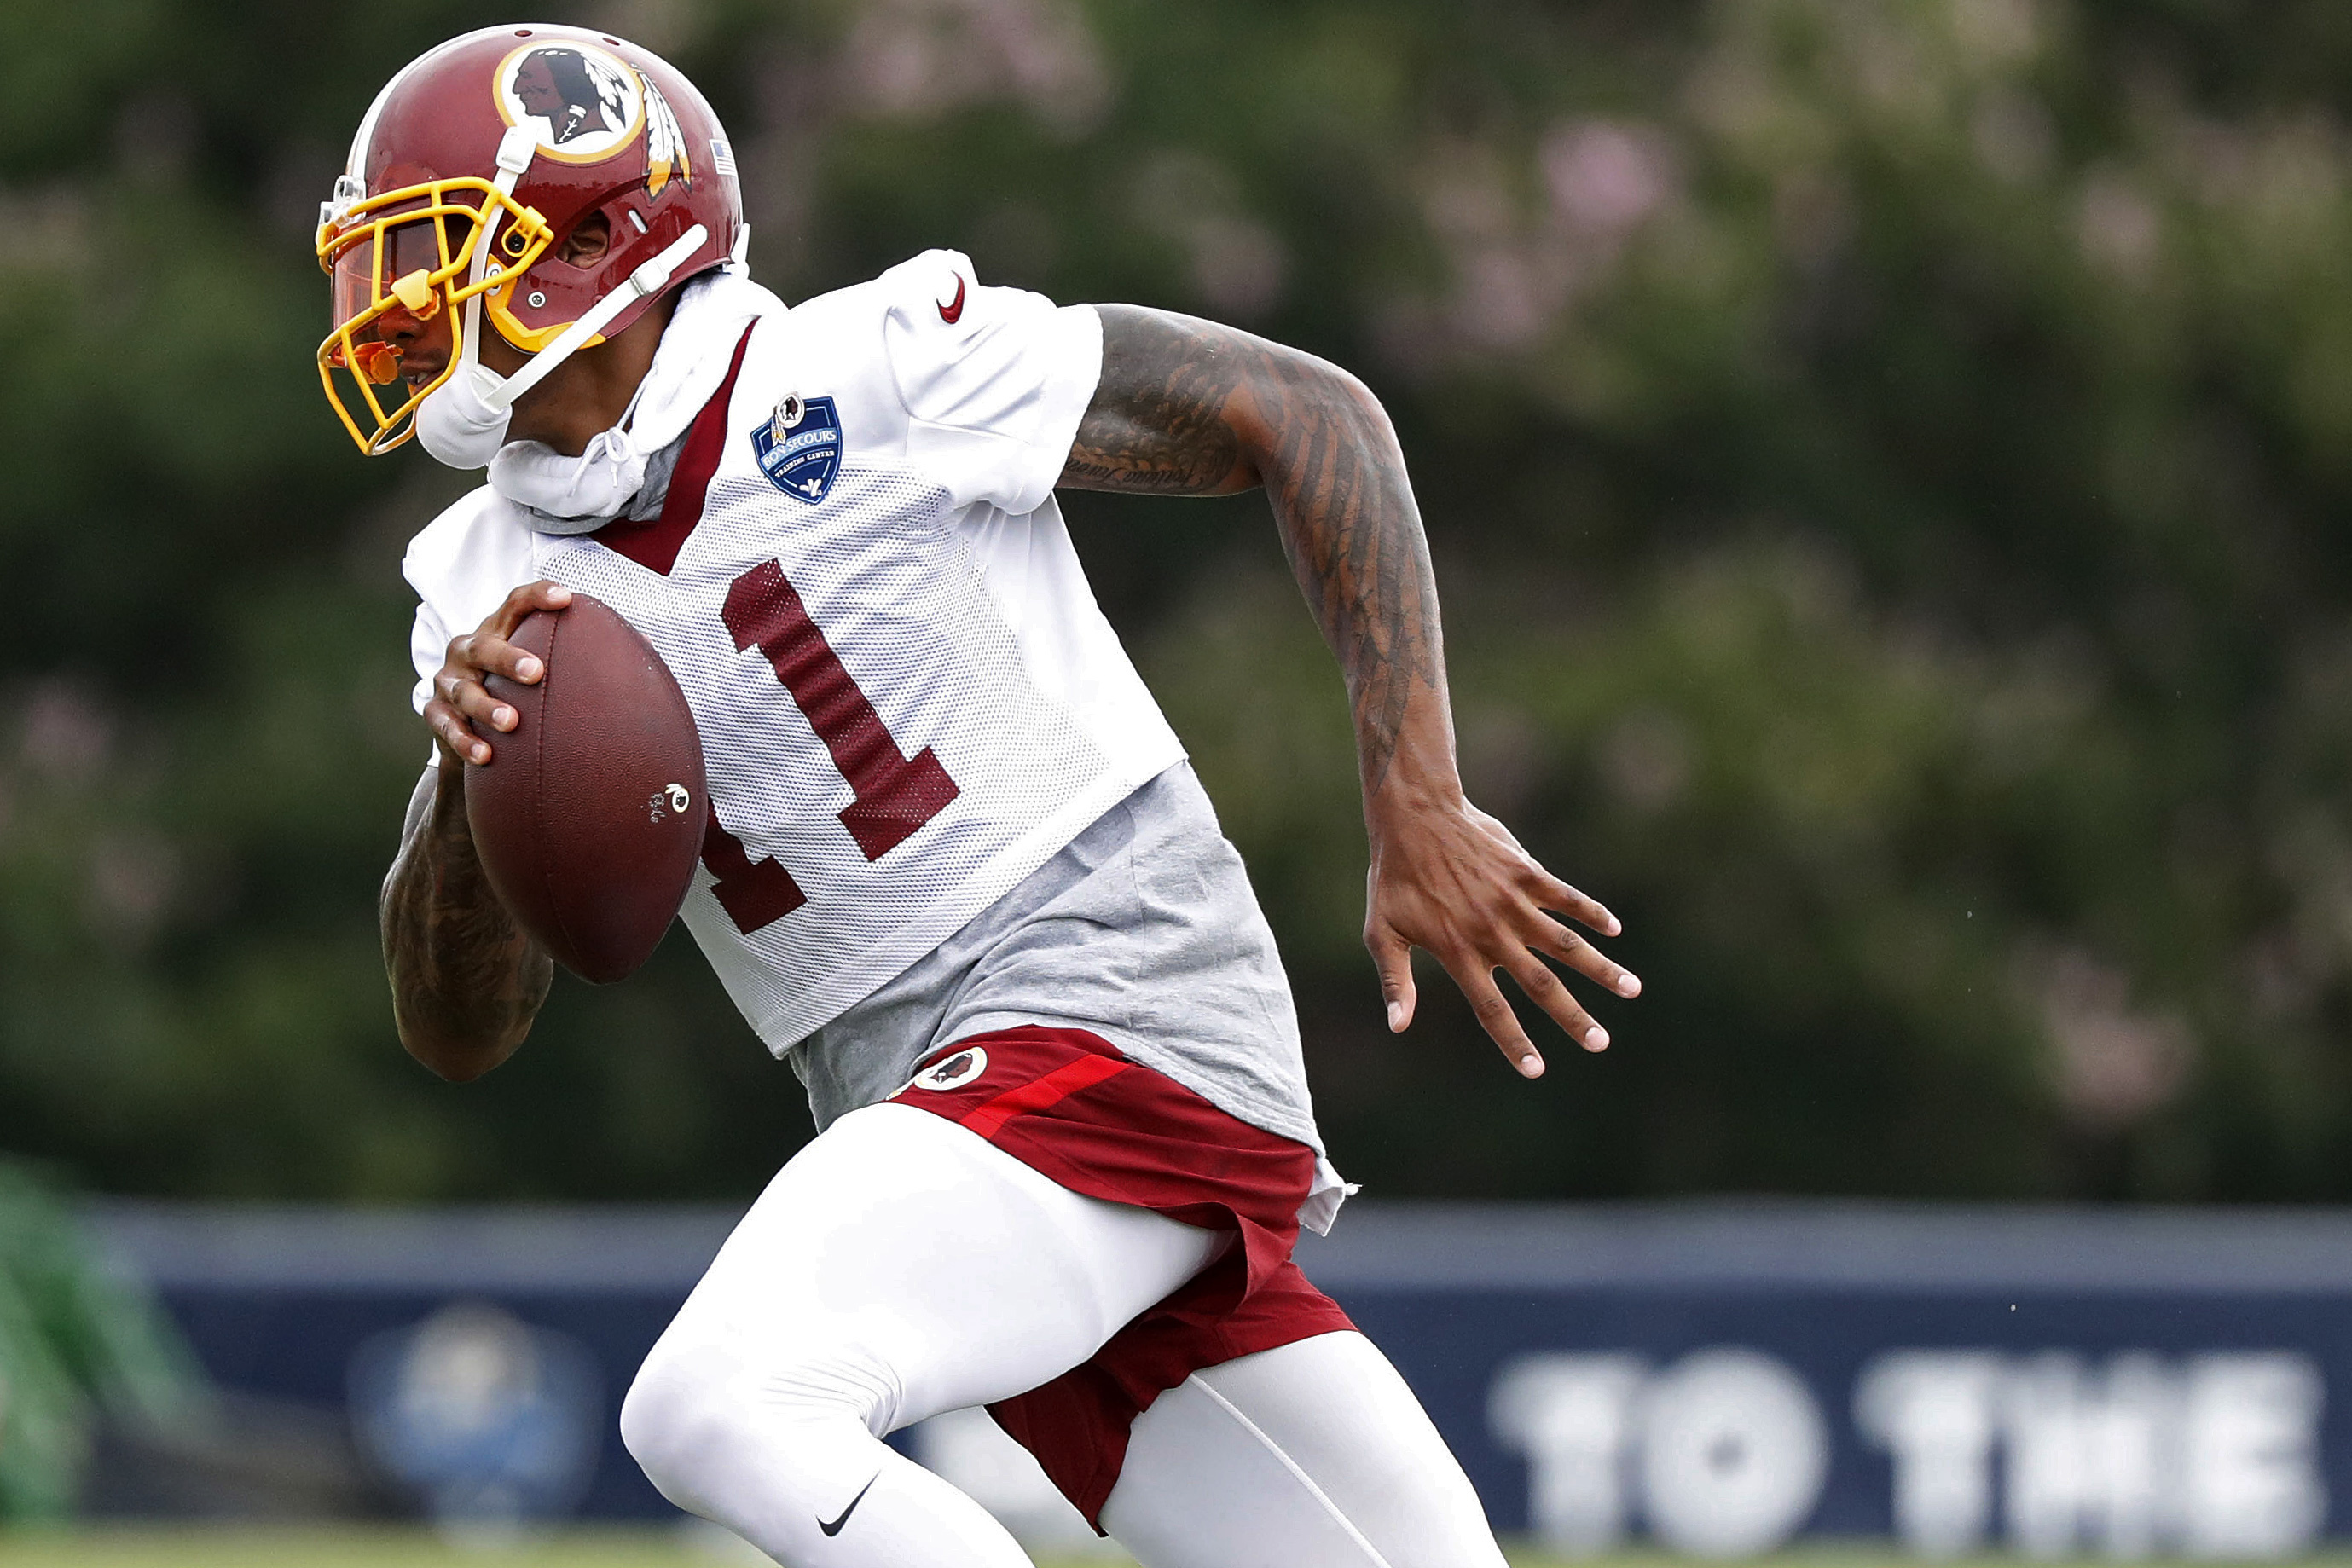 How Terrelle Pryor Went from a Failed QB to a WR with 'Scary